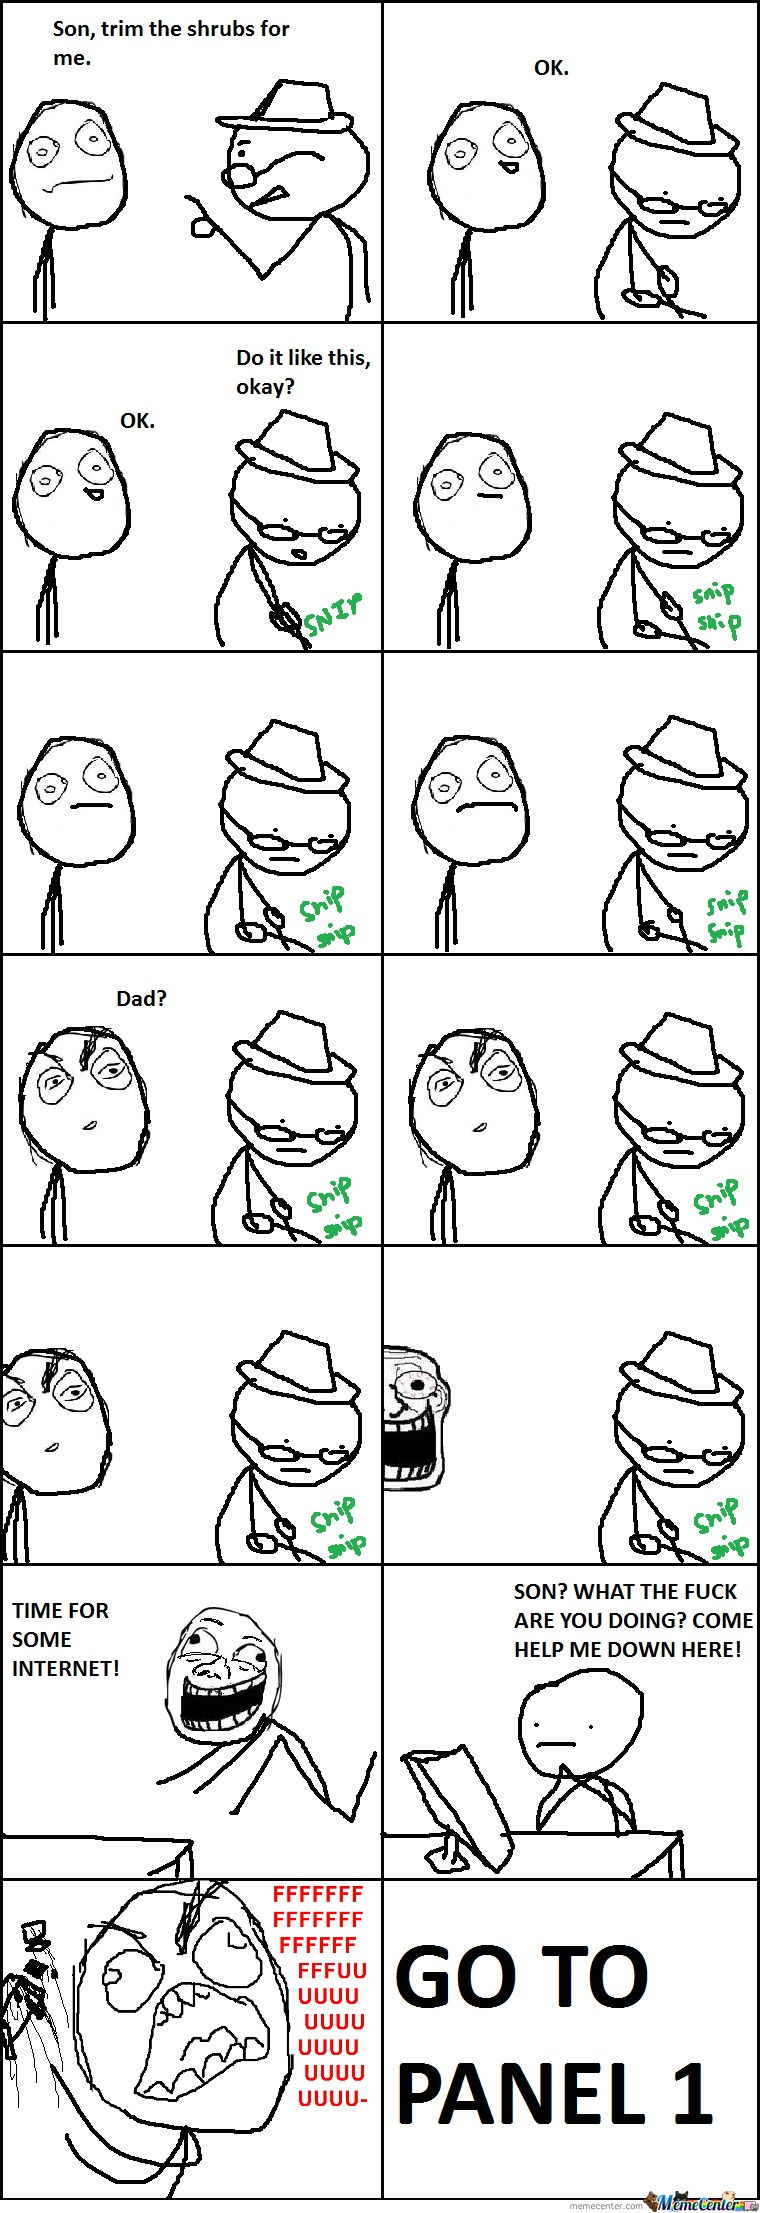 Whenever I Help My Dad...